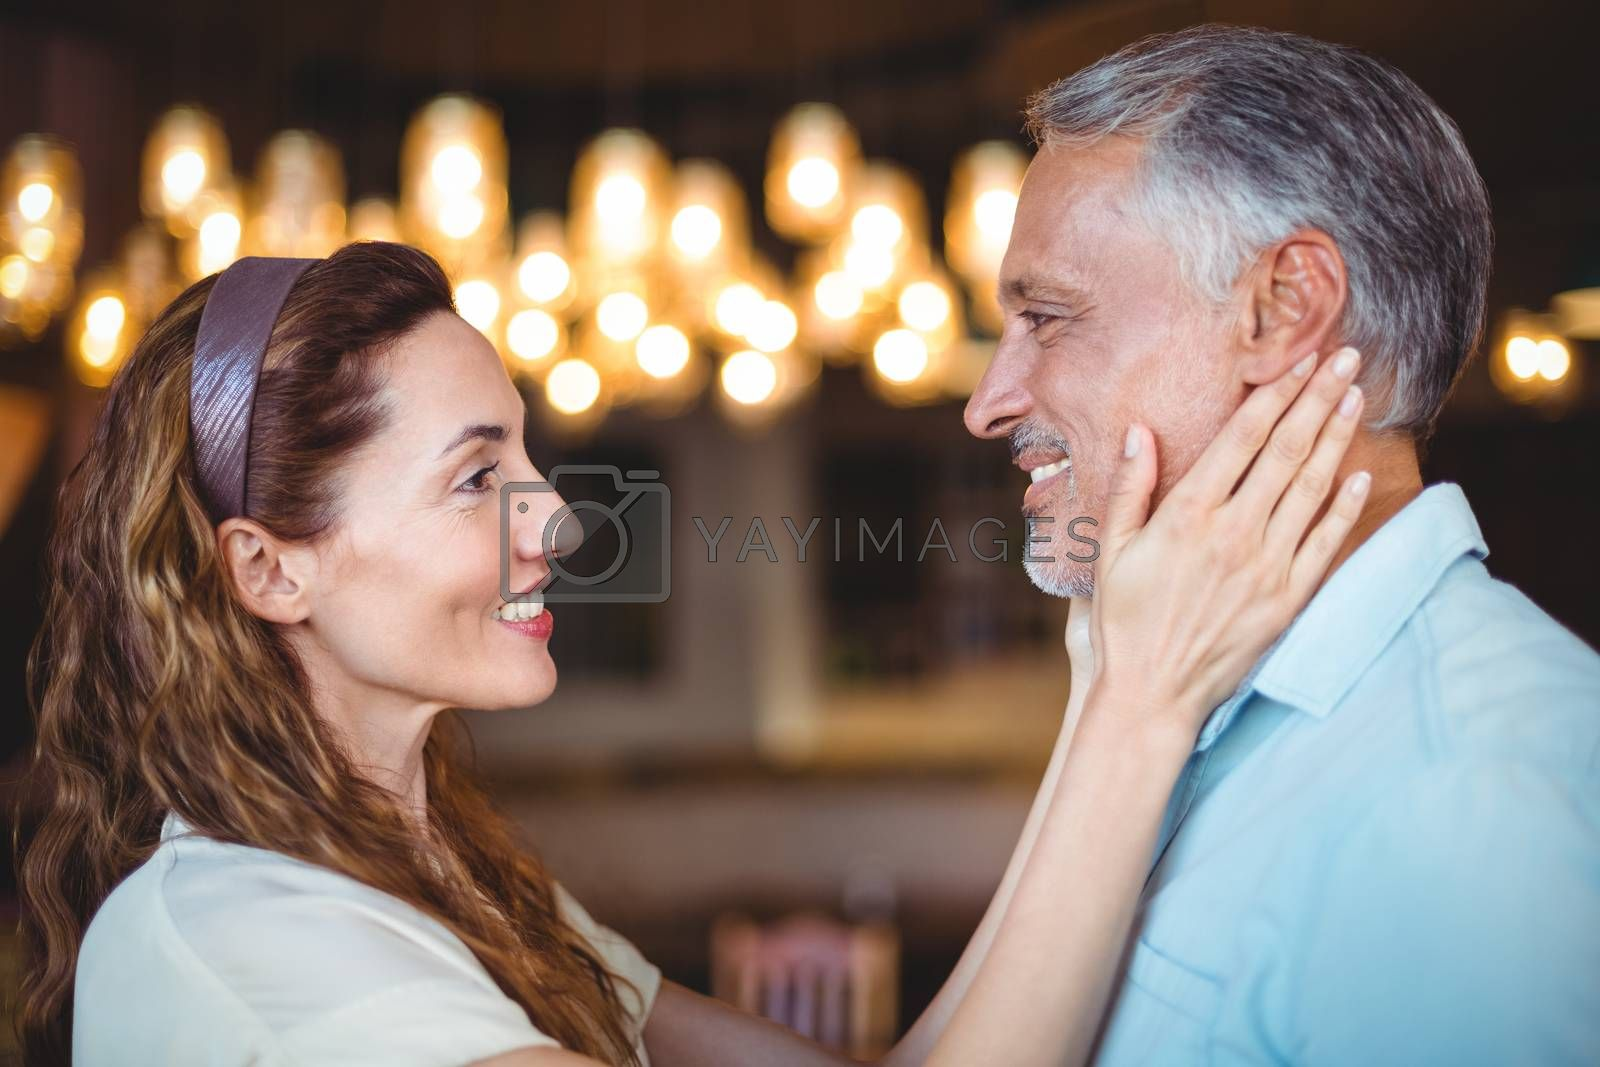 Royalty free image of Happy woman touching her husband by Wavebreakmedia